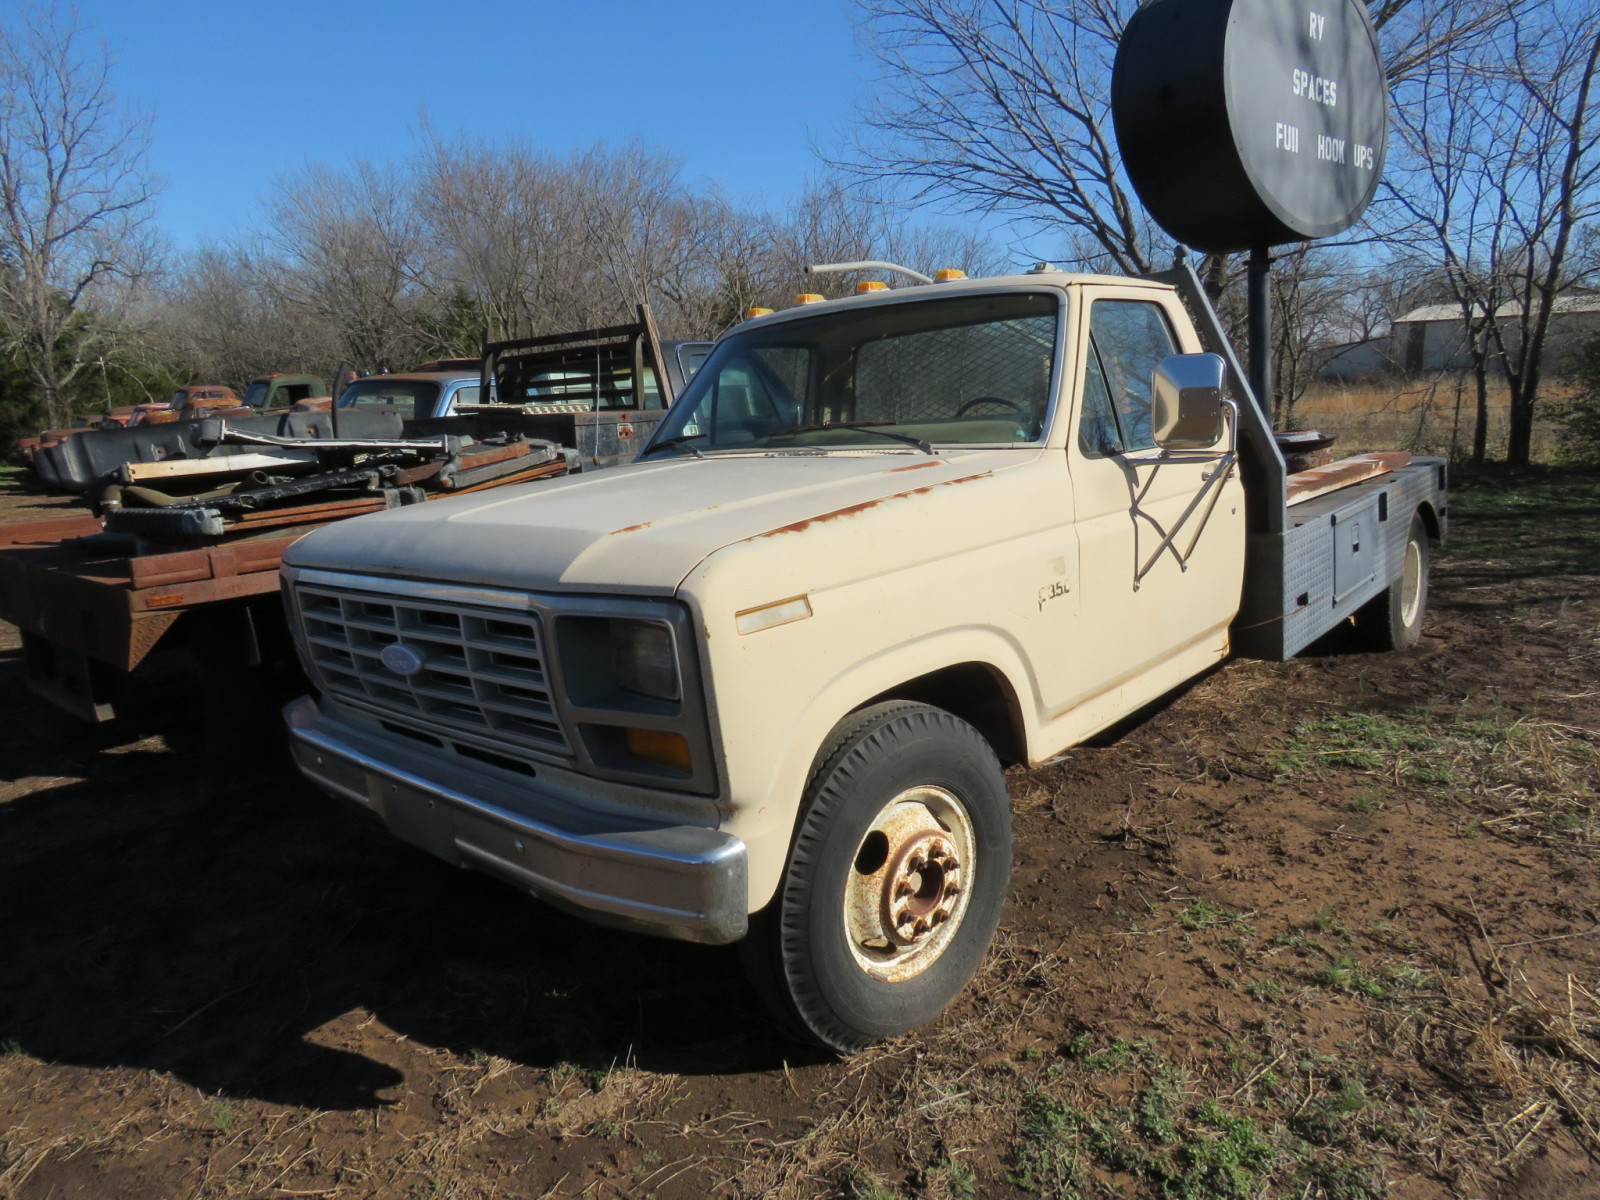 1983 Ford F350 Pickup - Image 2